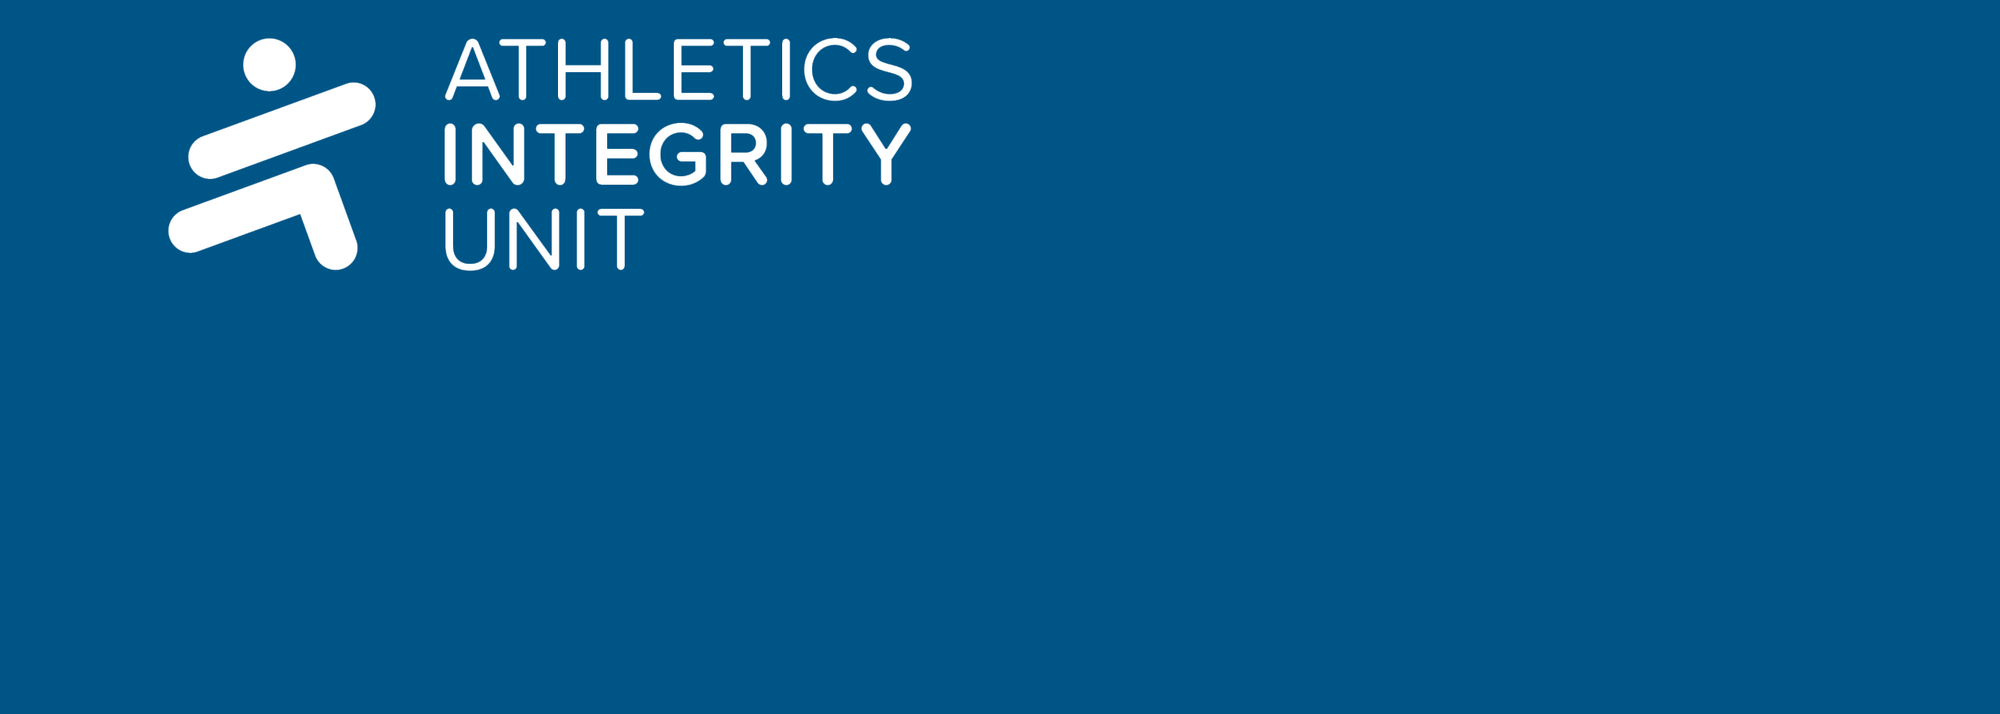 The Athletics Integrity Unit (AIU) has welcomed decisions of the Court of Arbitration for Sport (CAS) yesterday in relation to nine cases brought by the AIU against Russian Athletes.